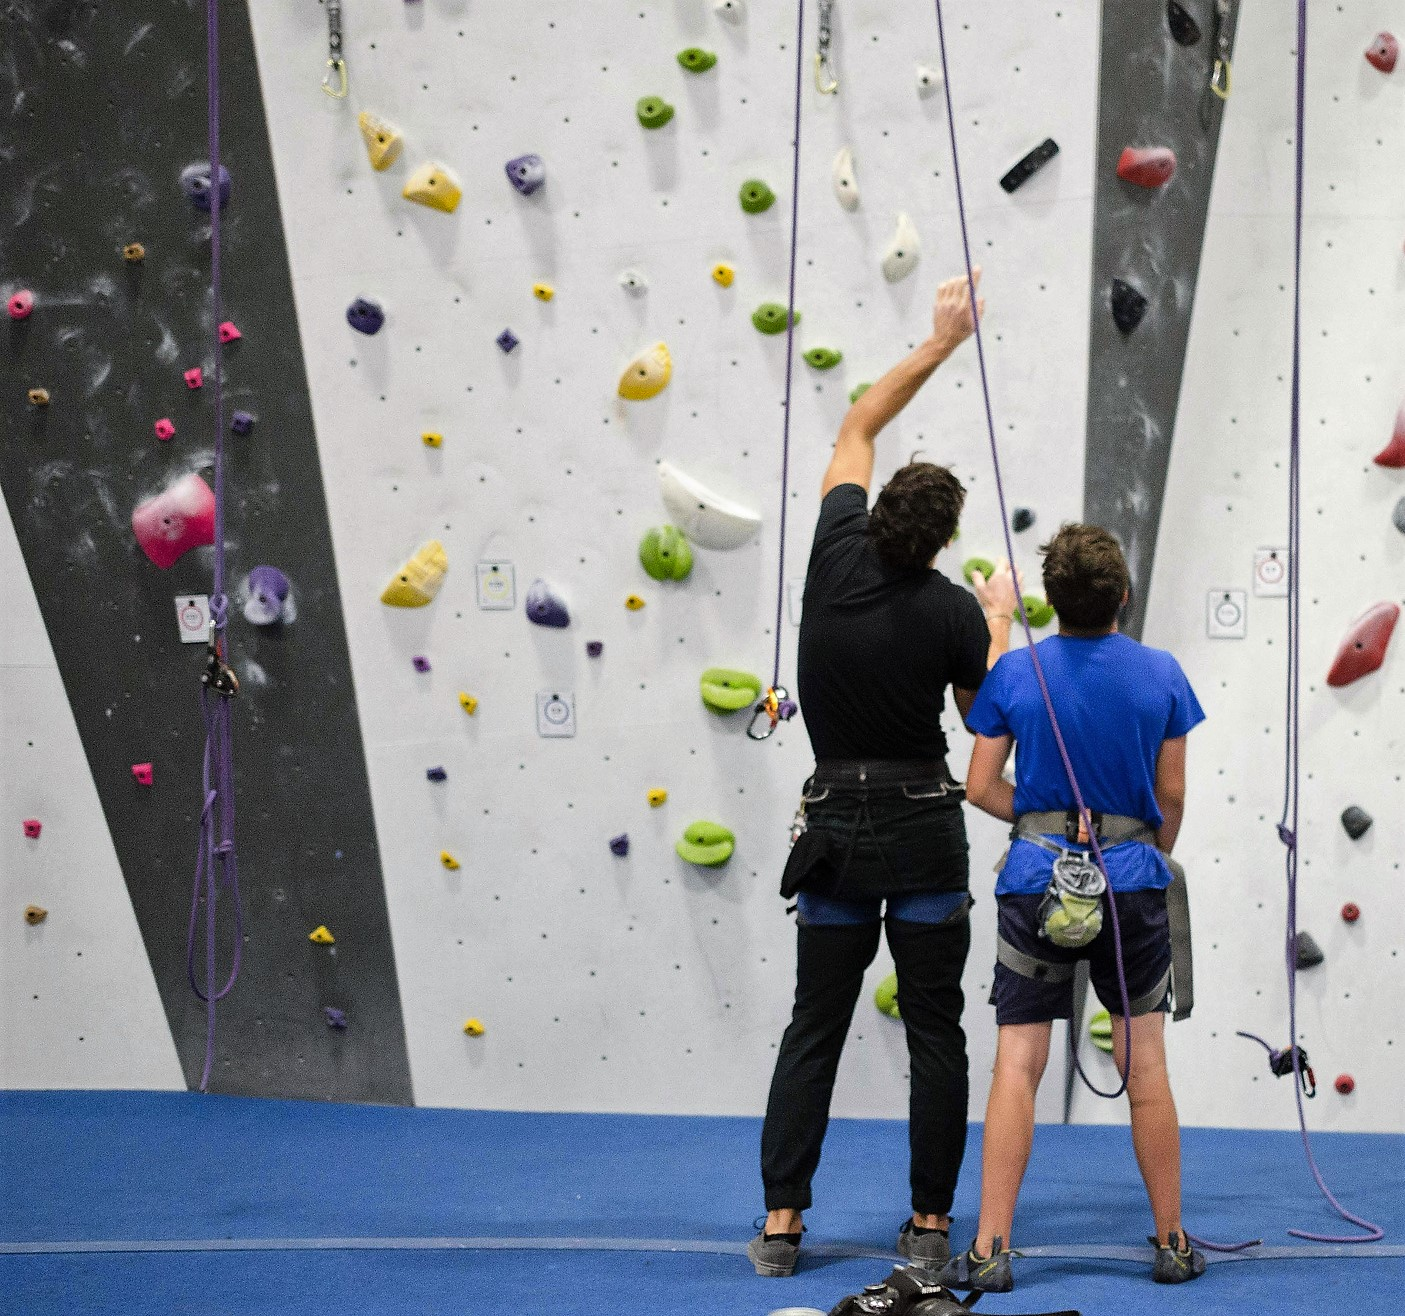 Travel Like a Local Immerse in Rock Climbing (Indoor Climbing Gym)